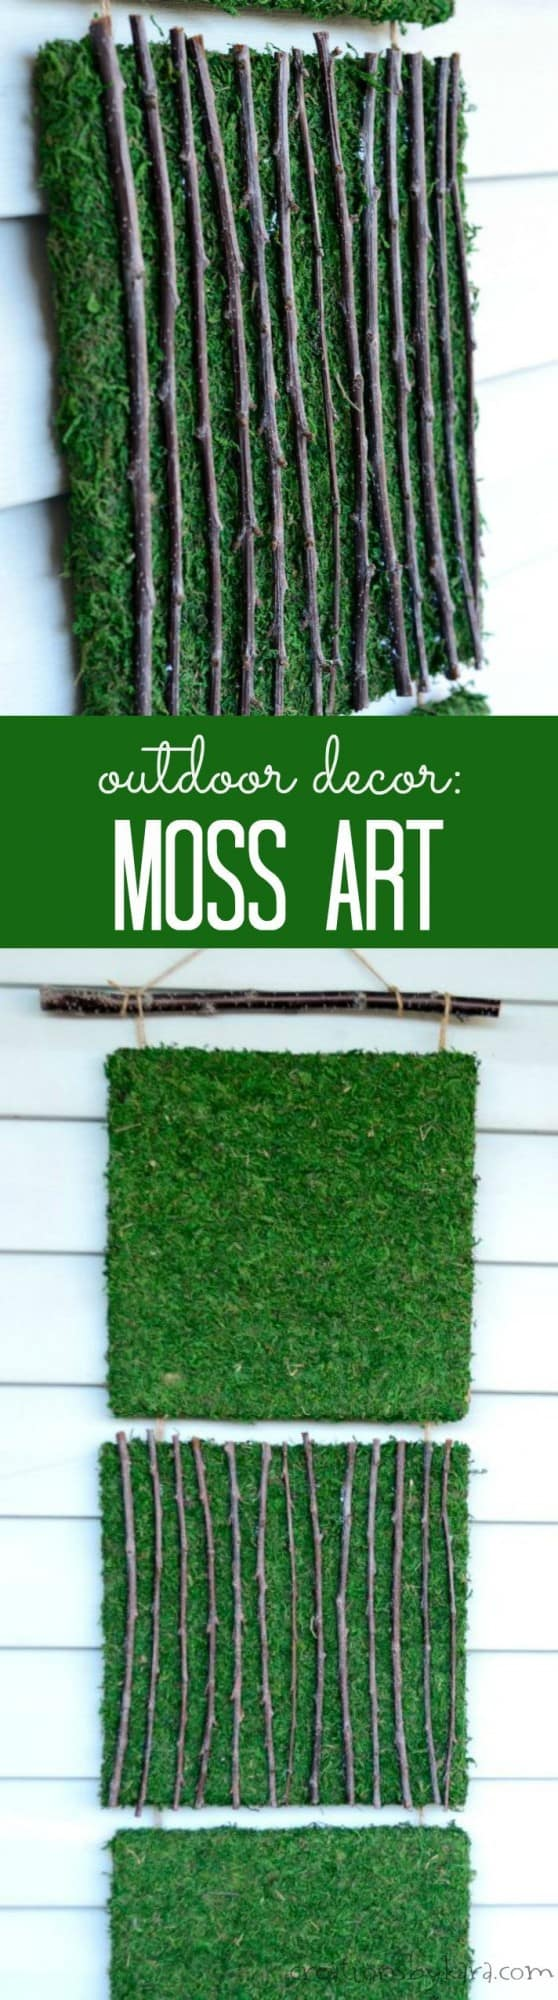 Outdoor Decor: Moss Art Tutoriial